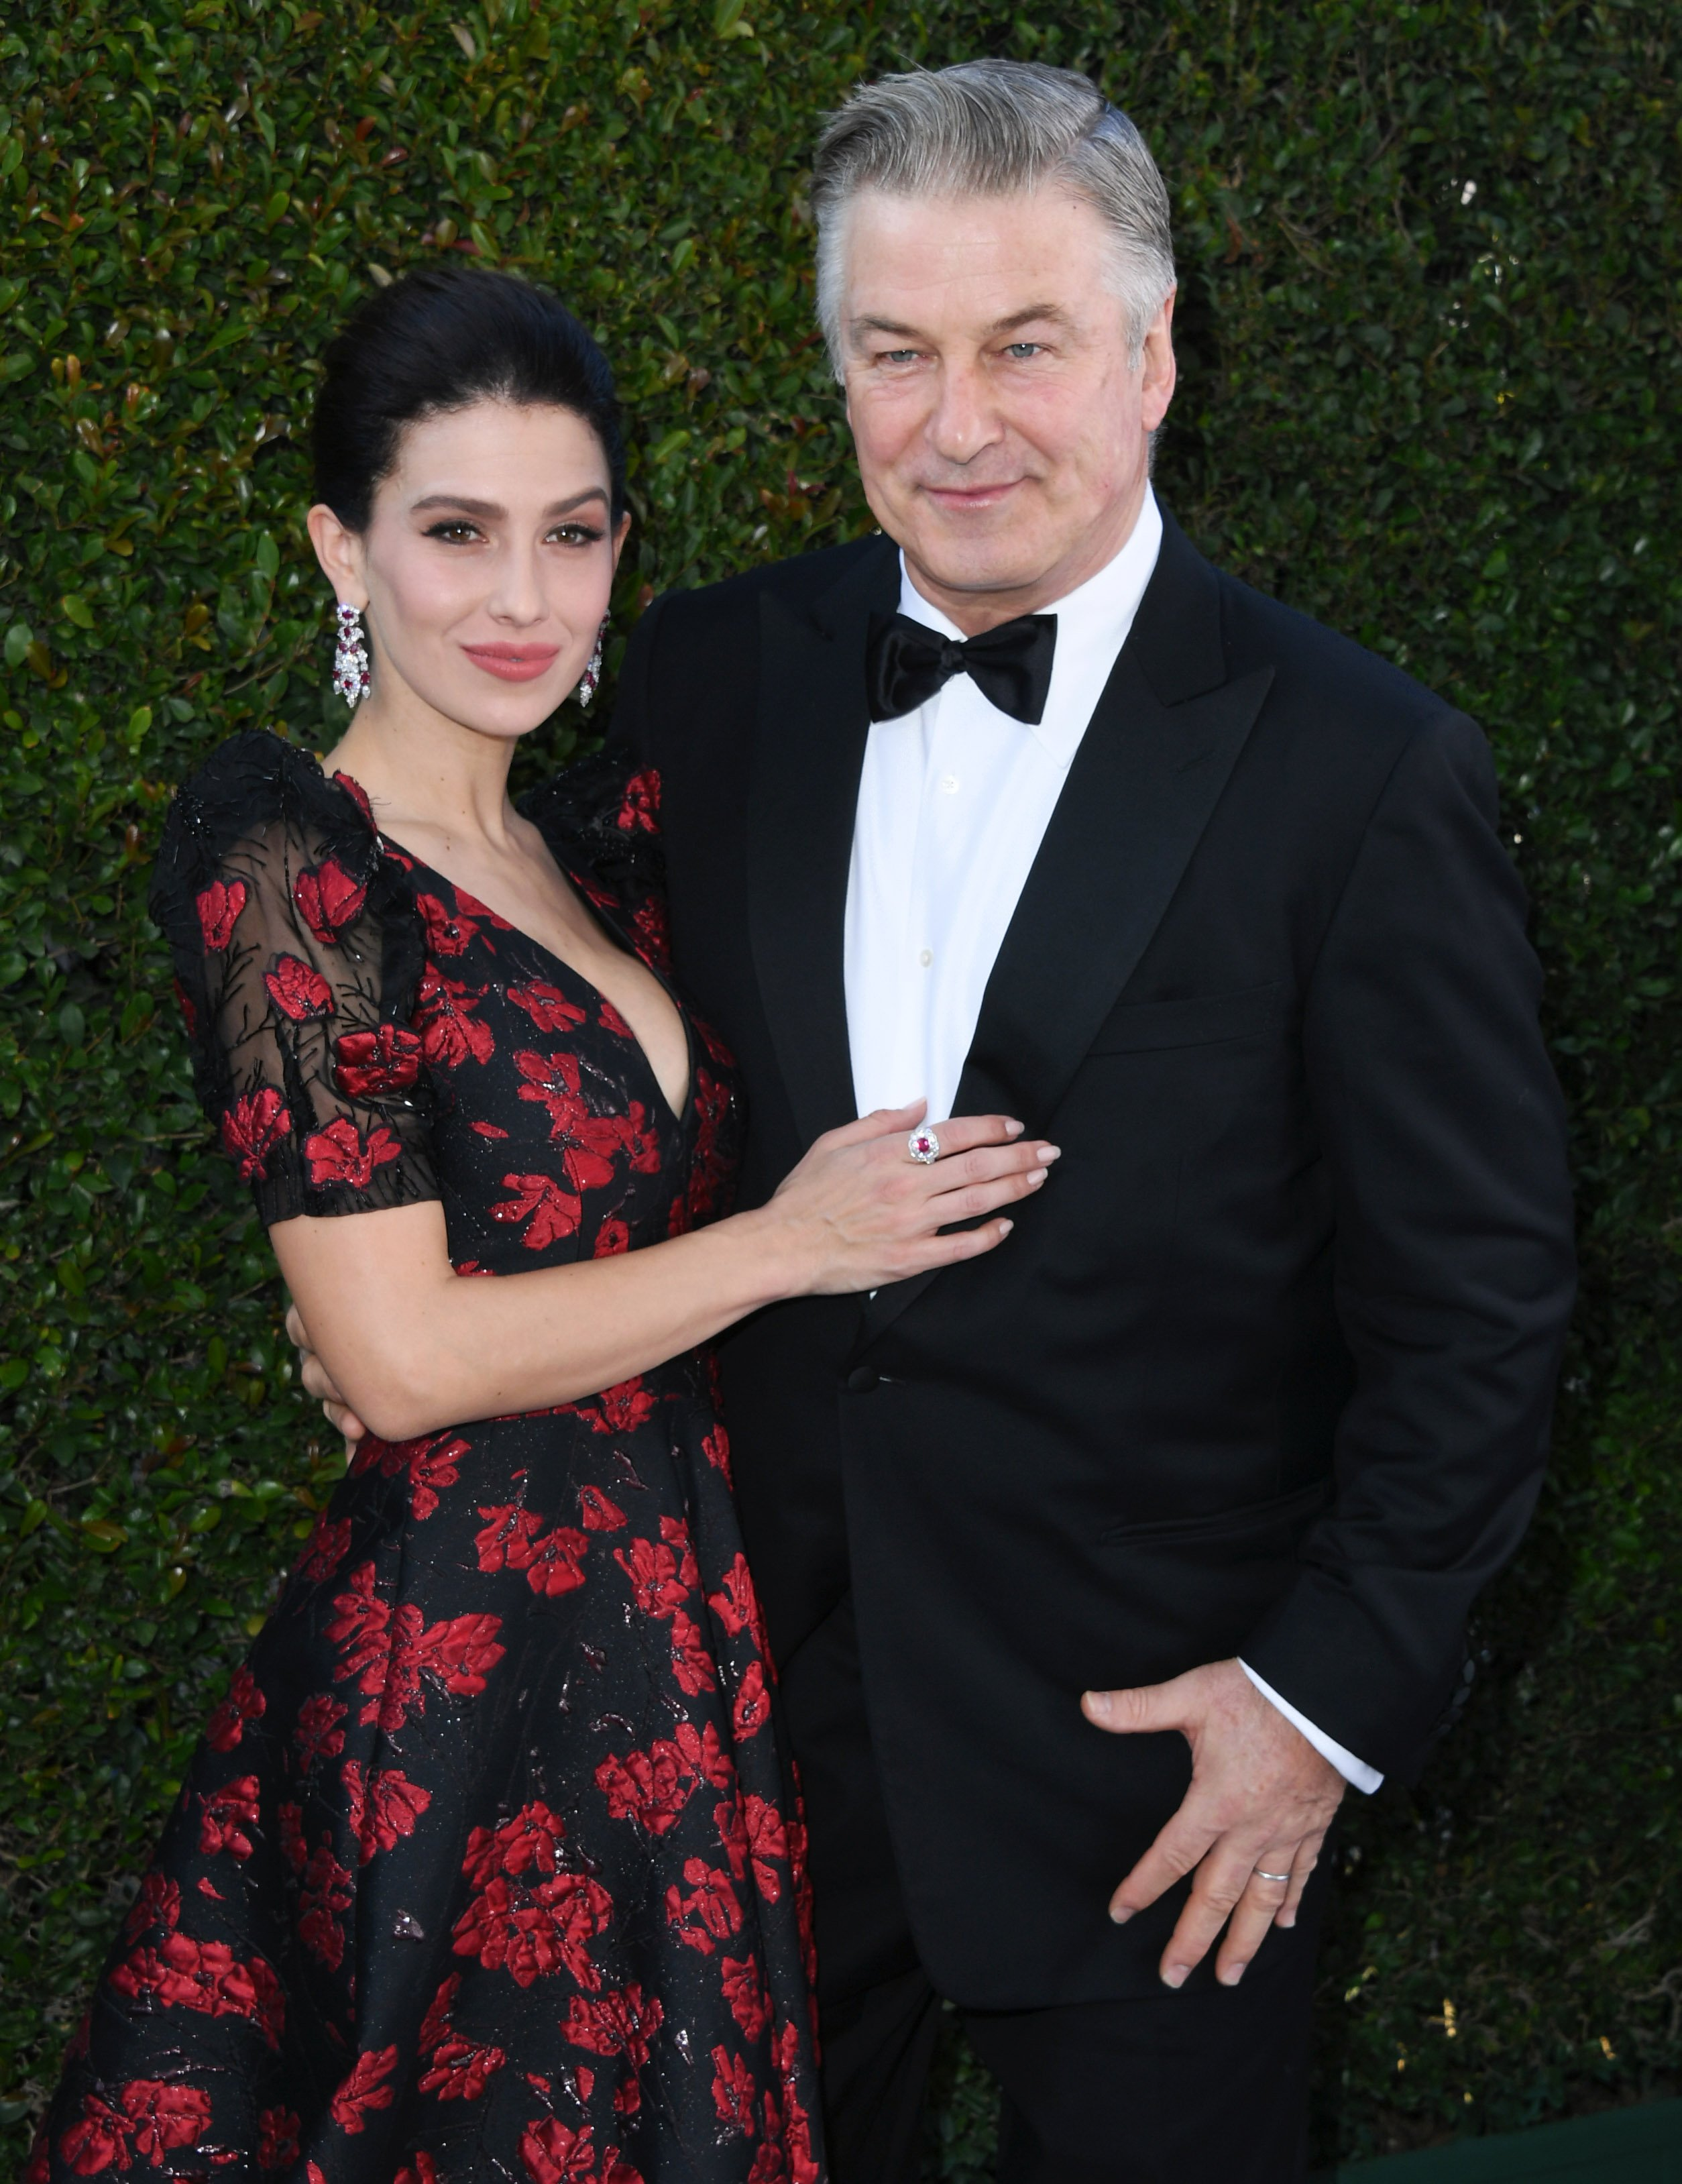 Hilaria Baldwin and Alec Baldwin attend 25th Annual Screen Actors Guild Awards at The Shrine Auditorium on January 27, 2019, in Los Angeles, California. | Source: Getty Images.